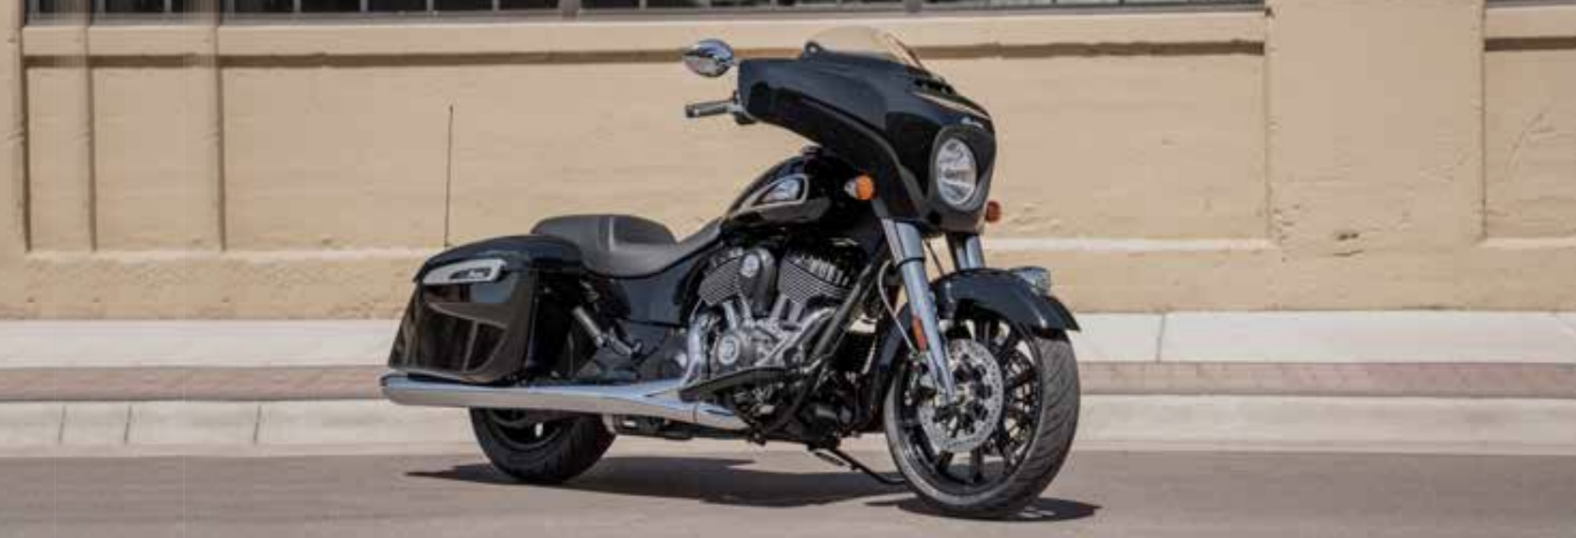 indian motorcycle chieftain